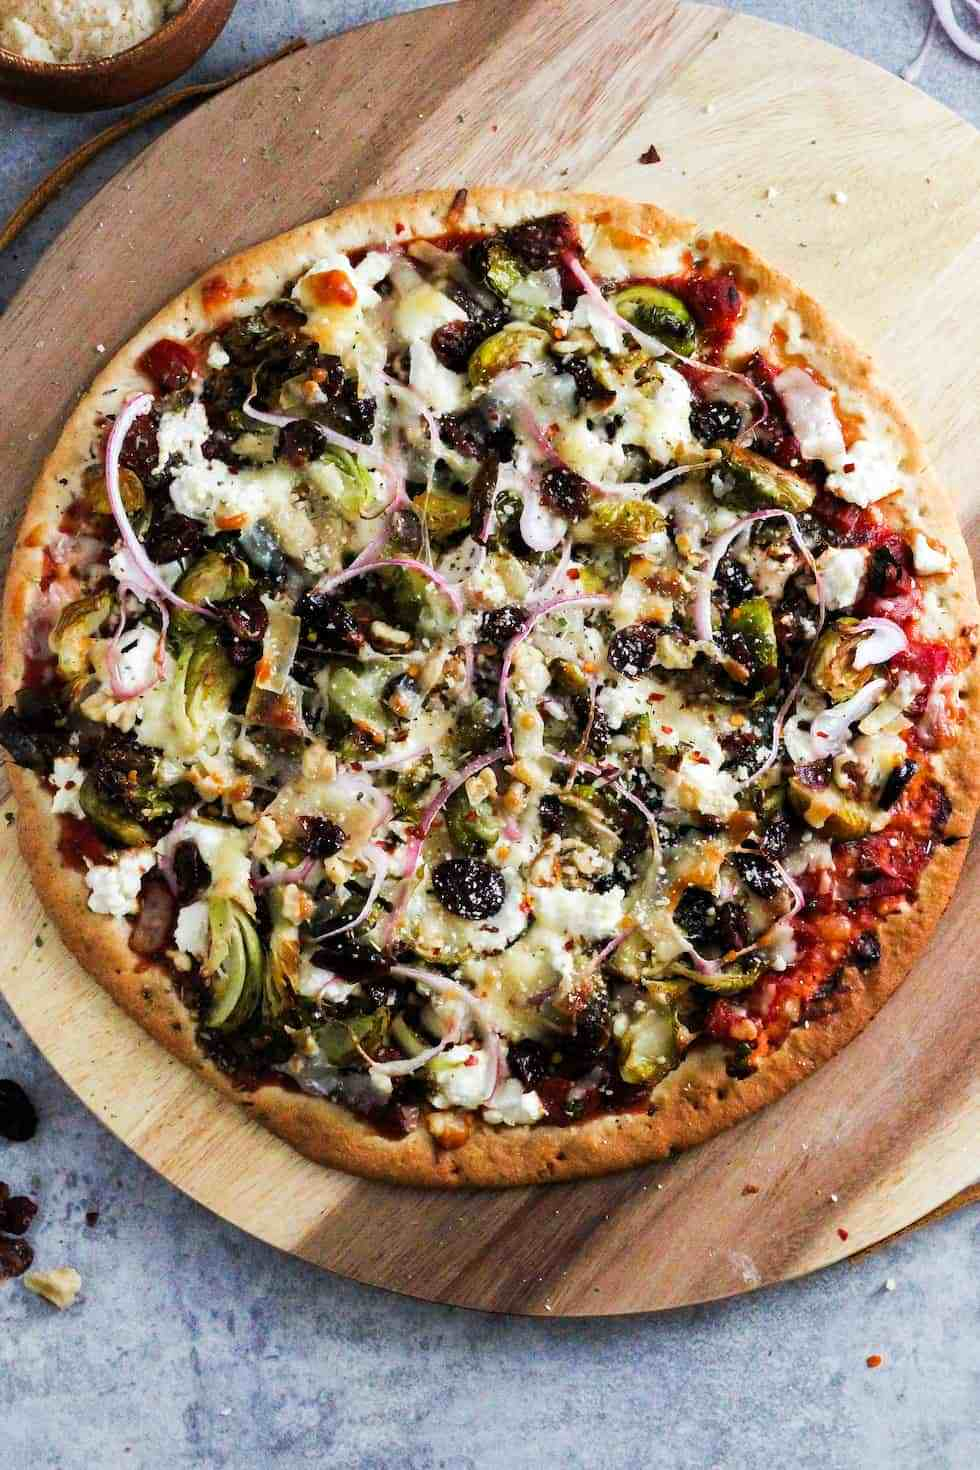 Brussels sprouts pizza on round wooden board.